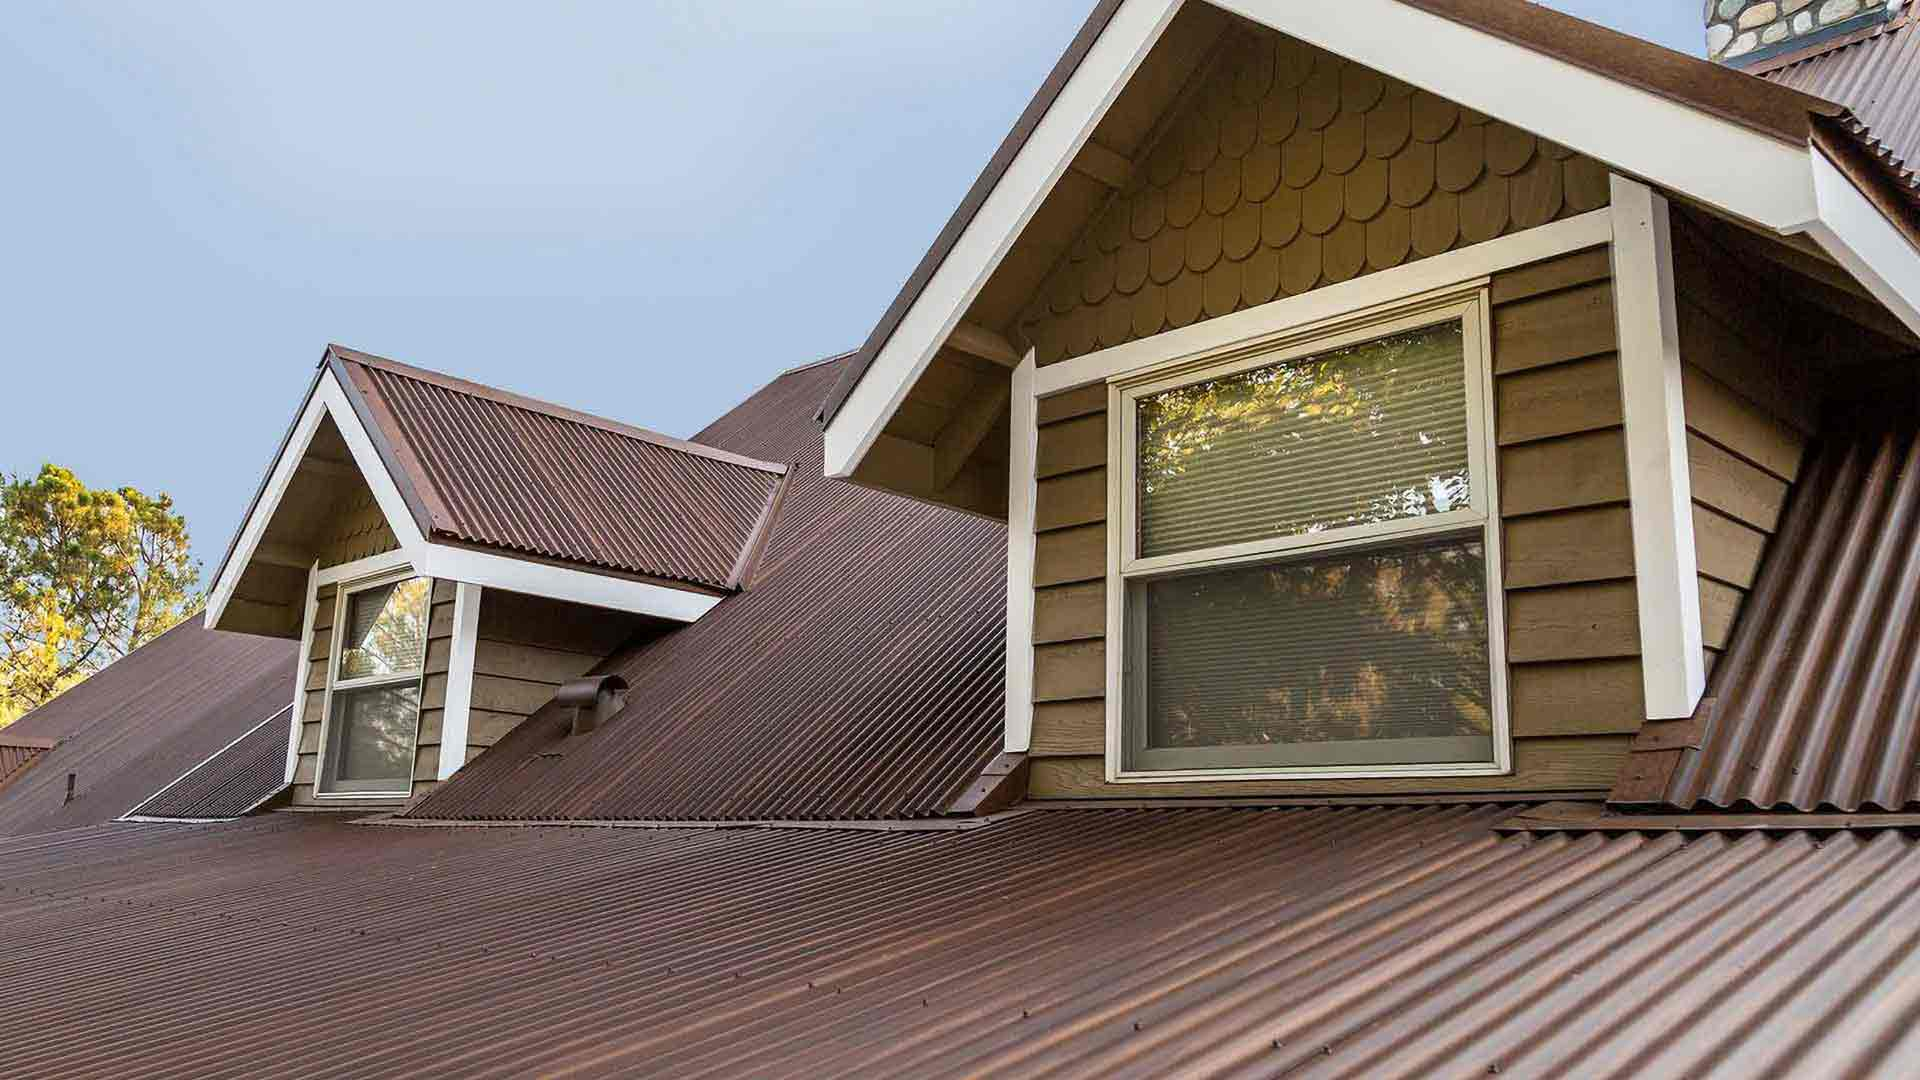 streaked-rust-corrugated-roofing